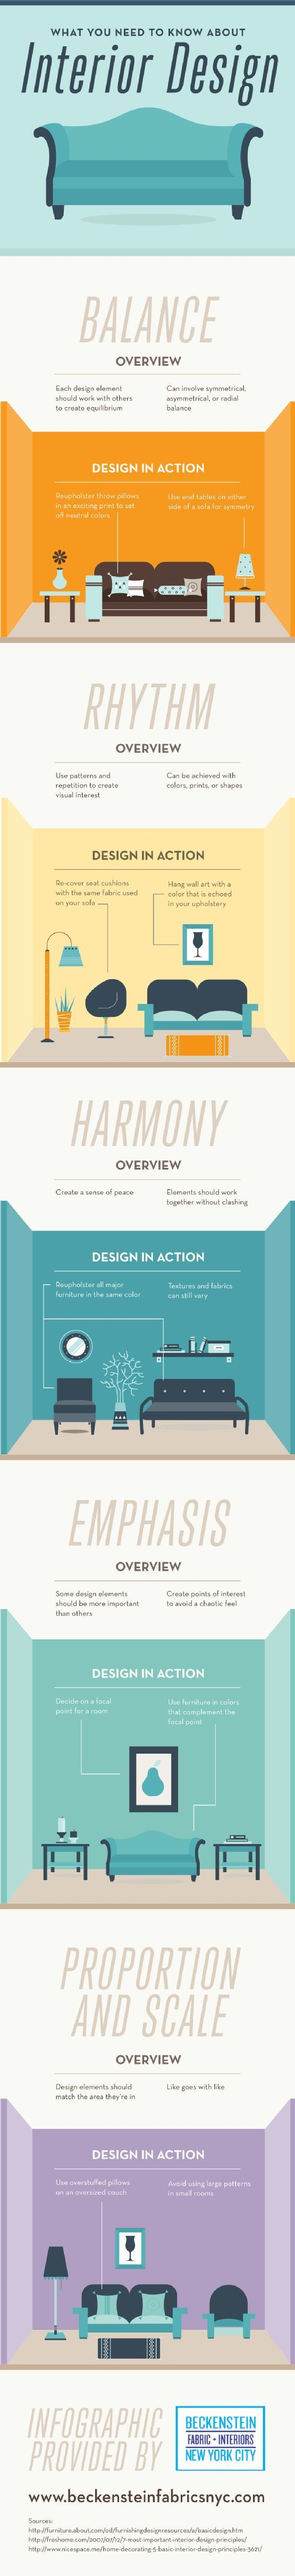 These 9 home decor charts are SO GOOD! I'm so glad I found this! These have seriously helped me redecorate my rooms and make them look GREAT! So pinning this!